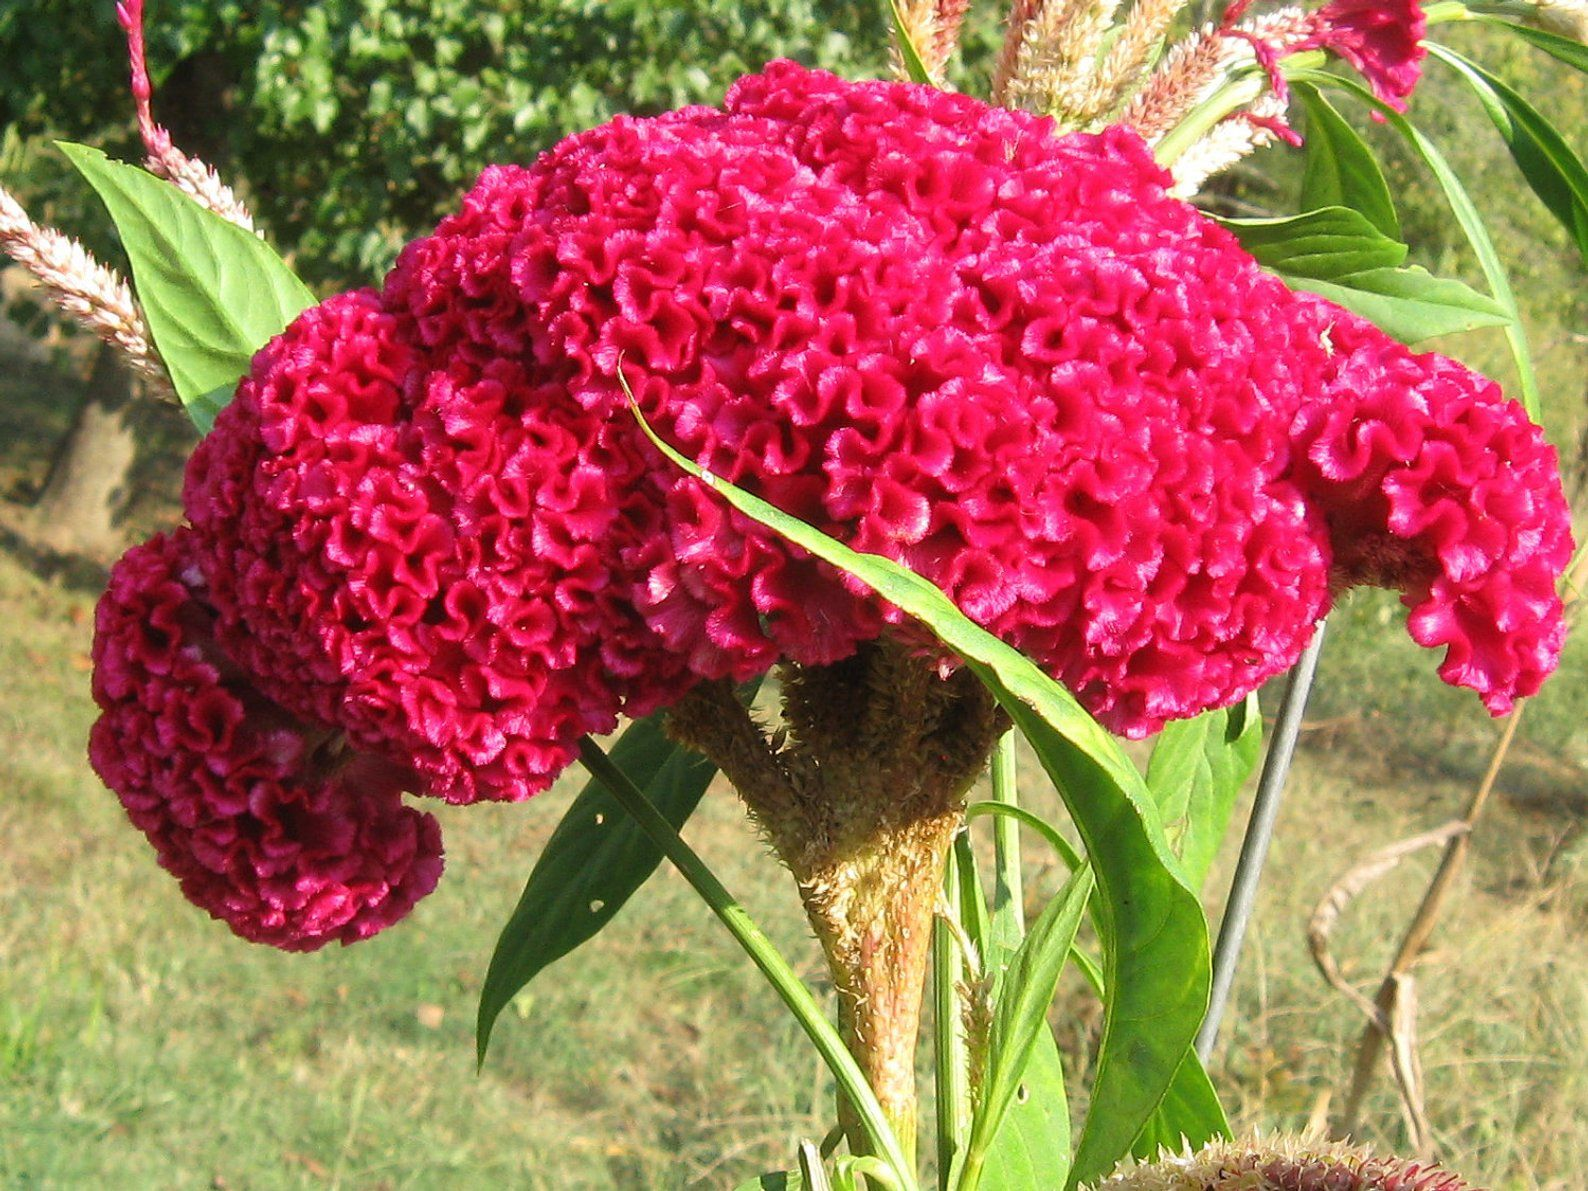 100 Giant Cockscombs Flower Seeds 1024 With Images Flower Seeds Celosia Flower Flowers